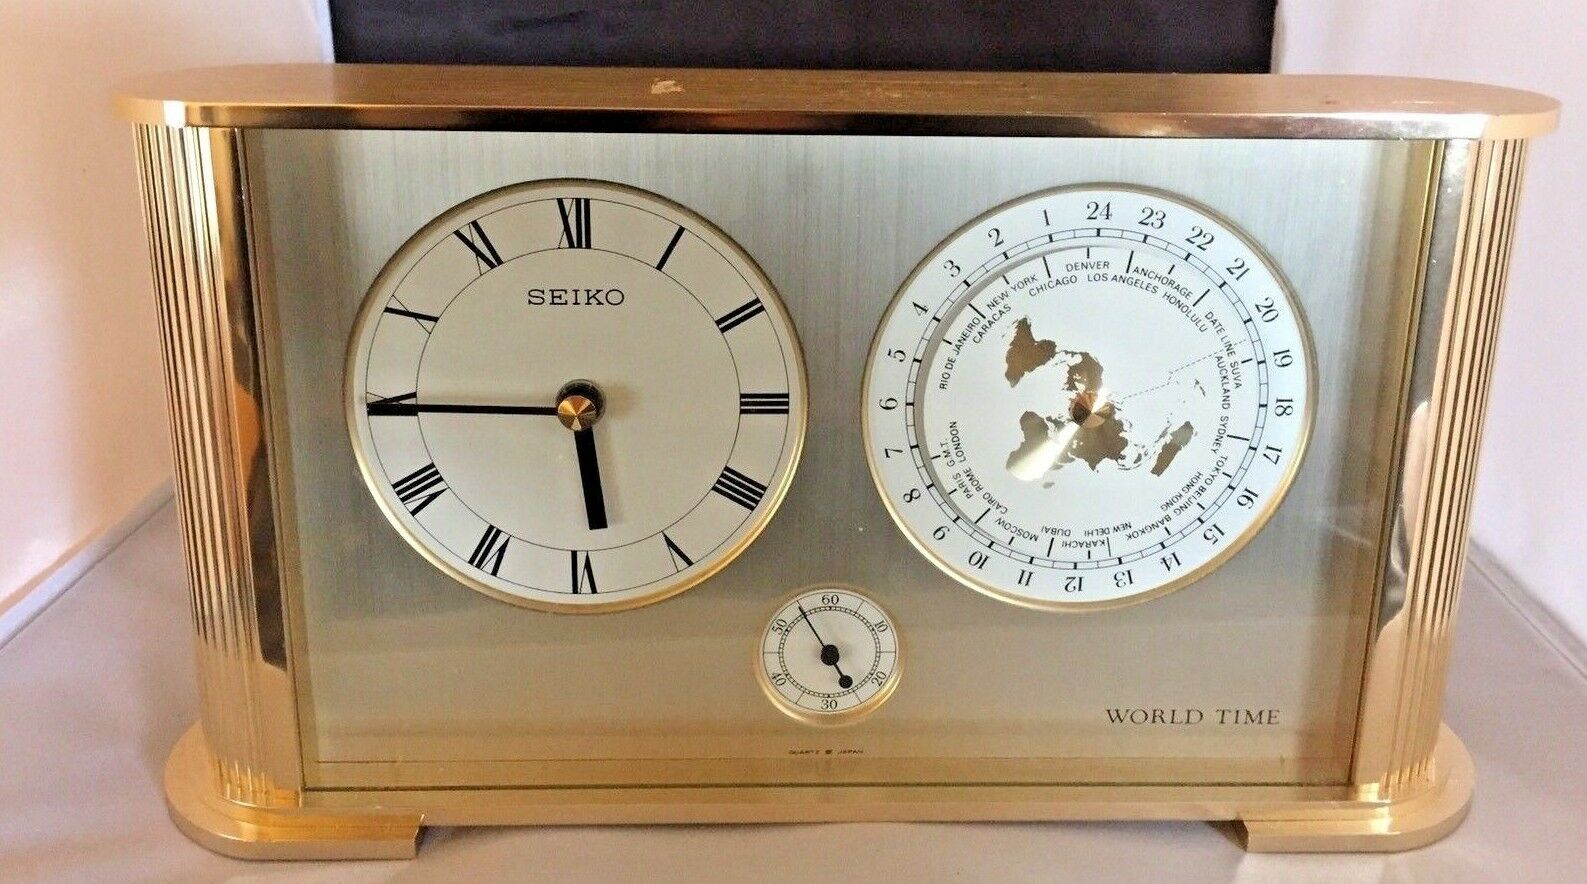 Rare vintage seiko quartz brass world time clock made by the 1 of 12only 1 available gumiabroncs Image collections